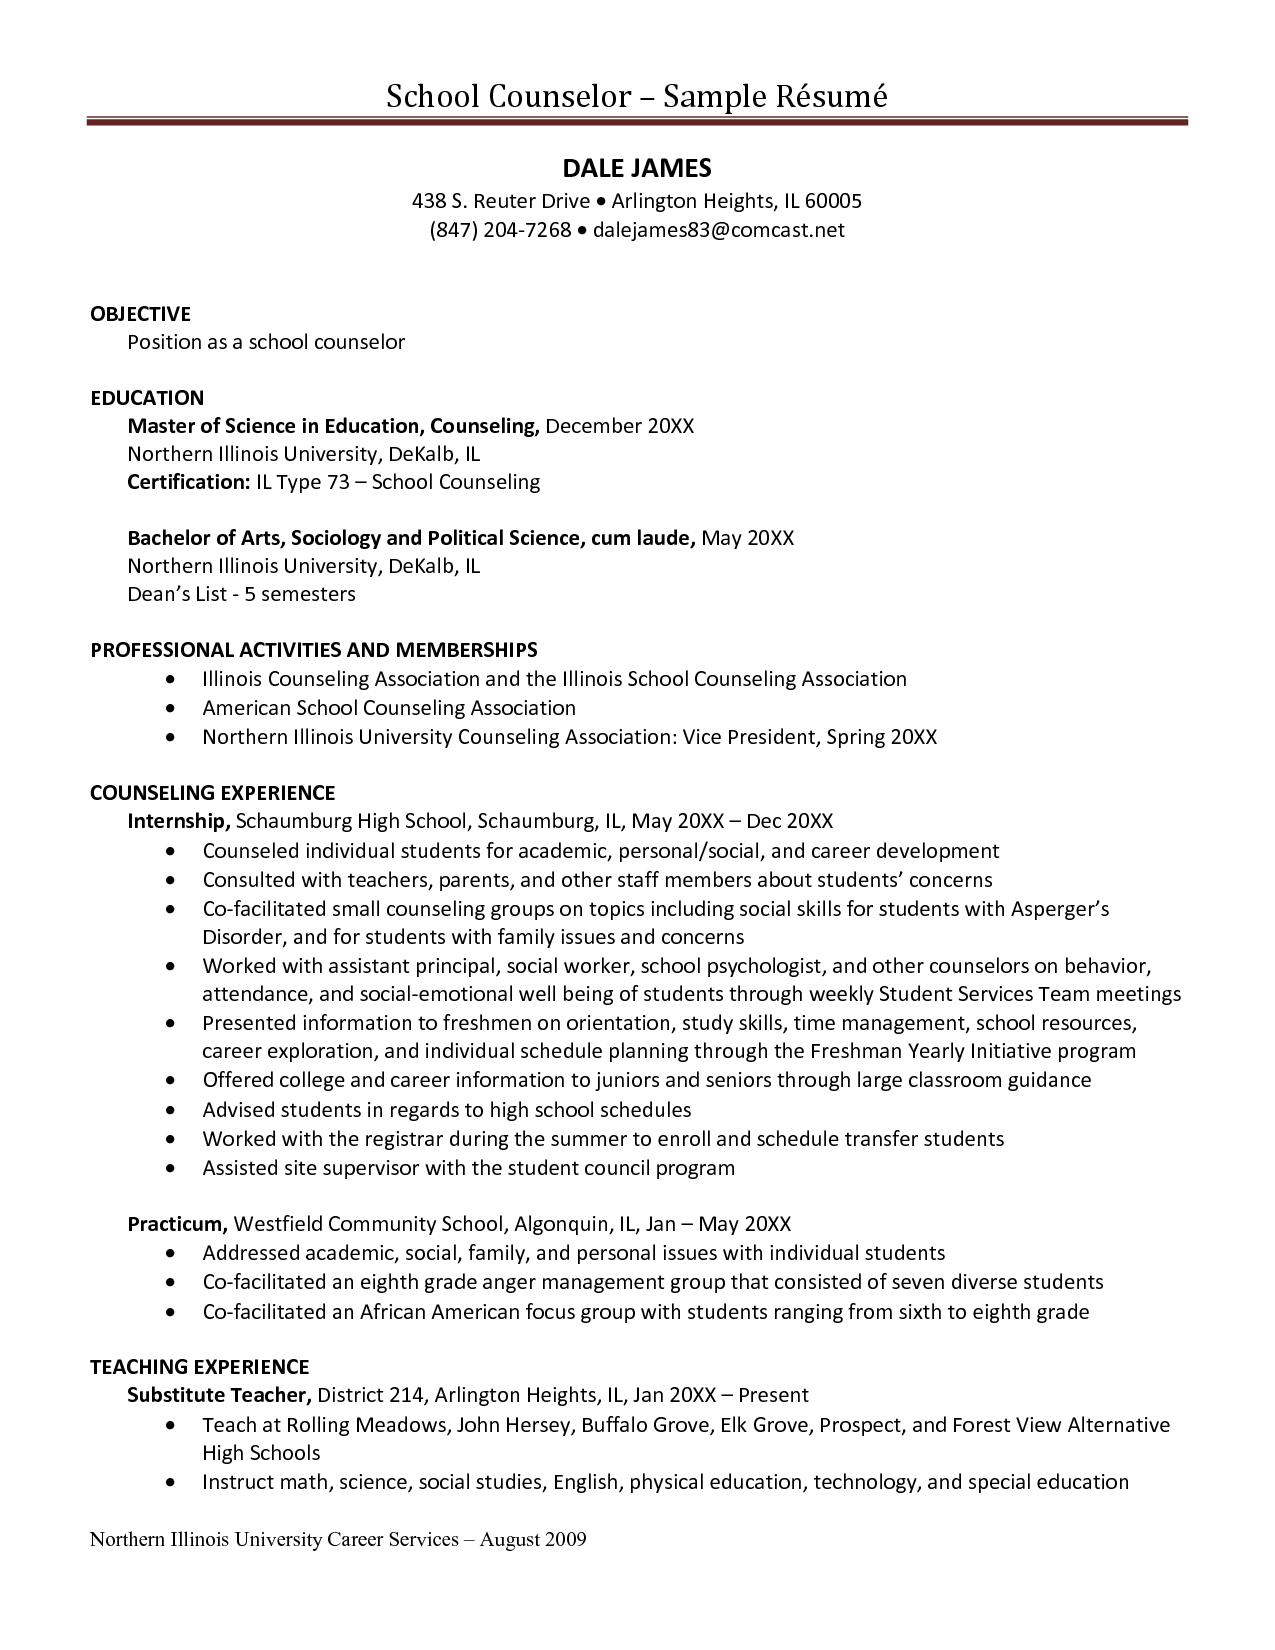 michigan school guidance counselor job postings